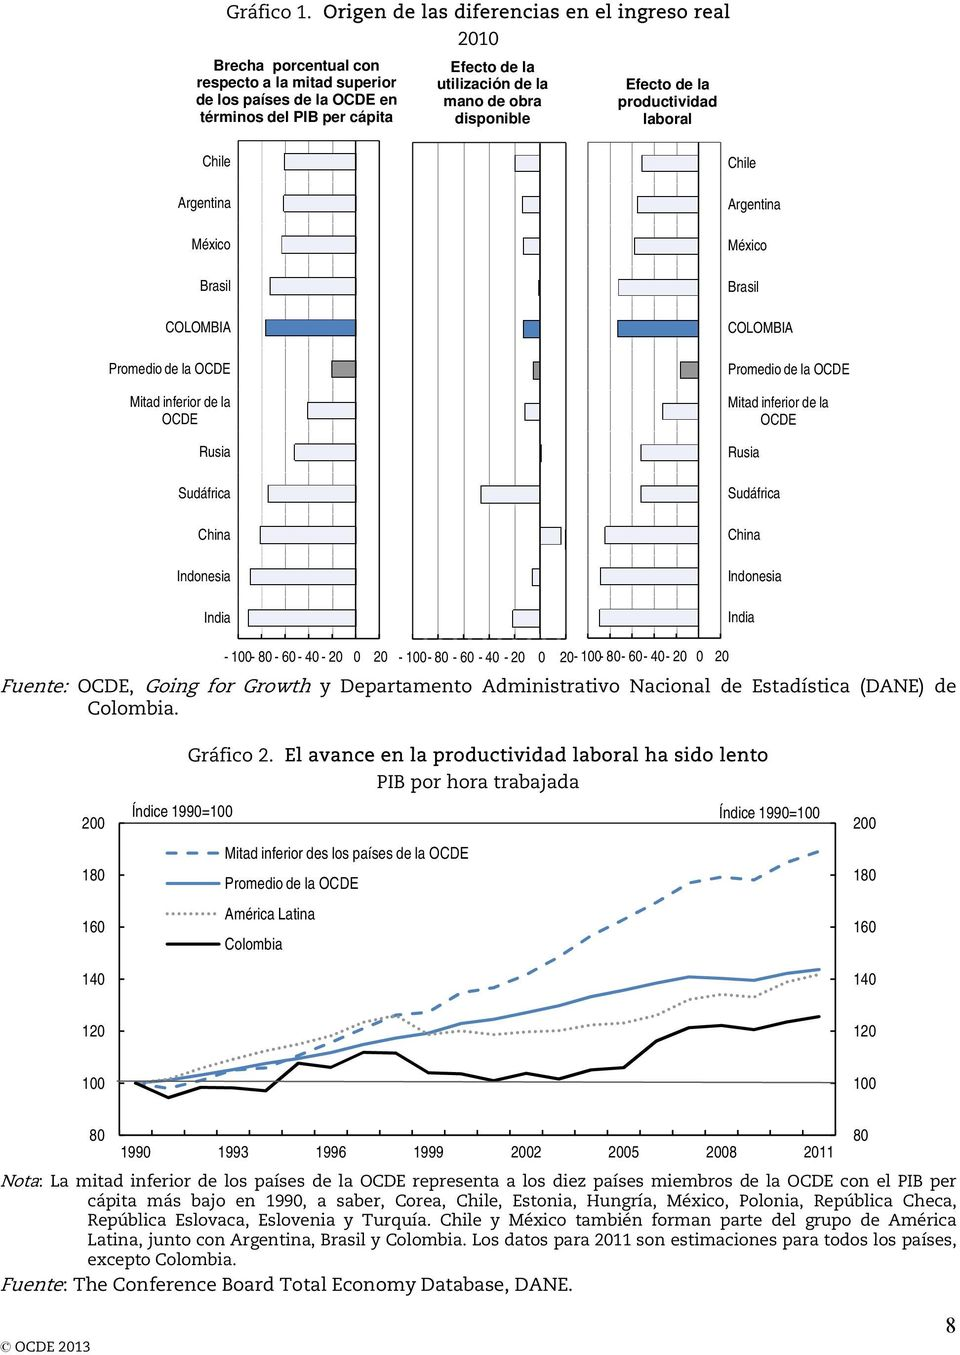 Effect de of la de los países de la OCDE en of OECD countries in mano de obra productividad resource utilisation labour términos del PIB per cápita terms of GDP per capita disponible productivity